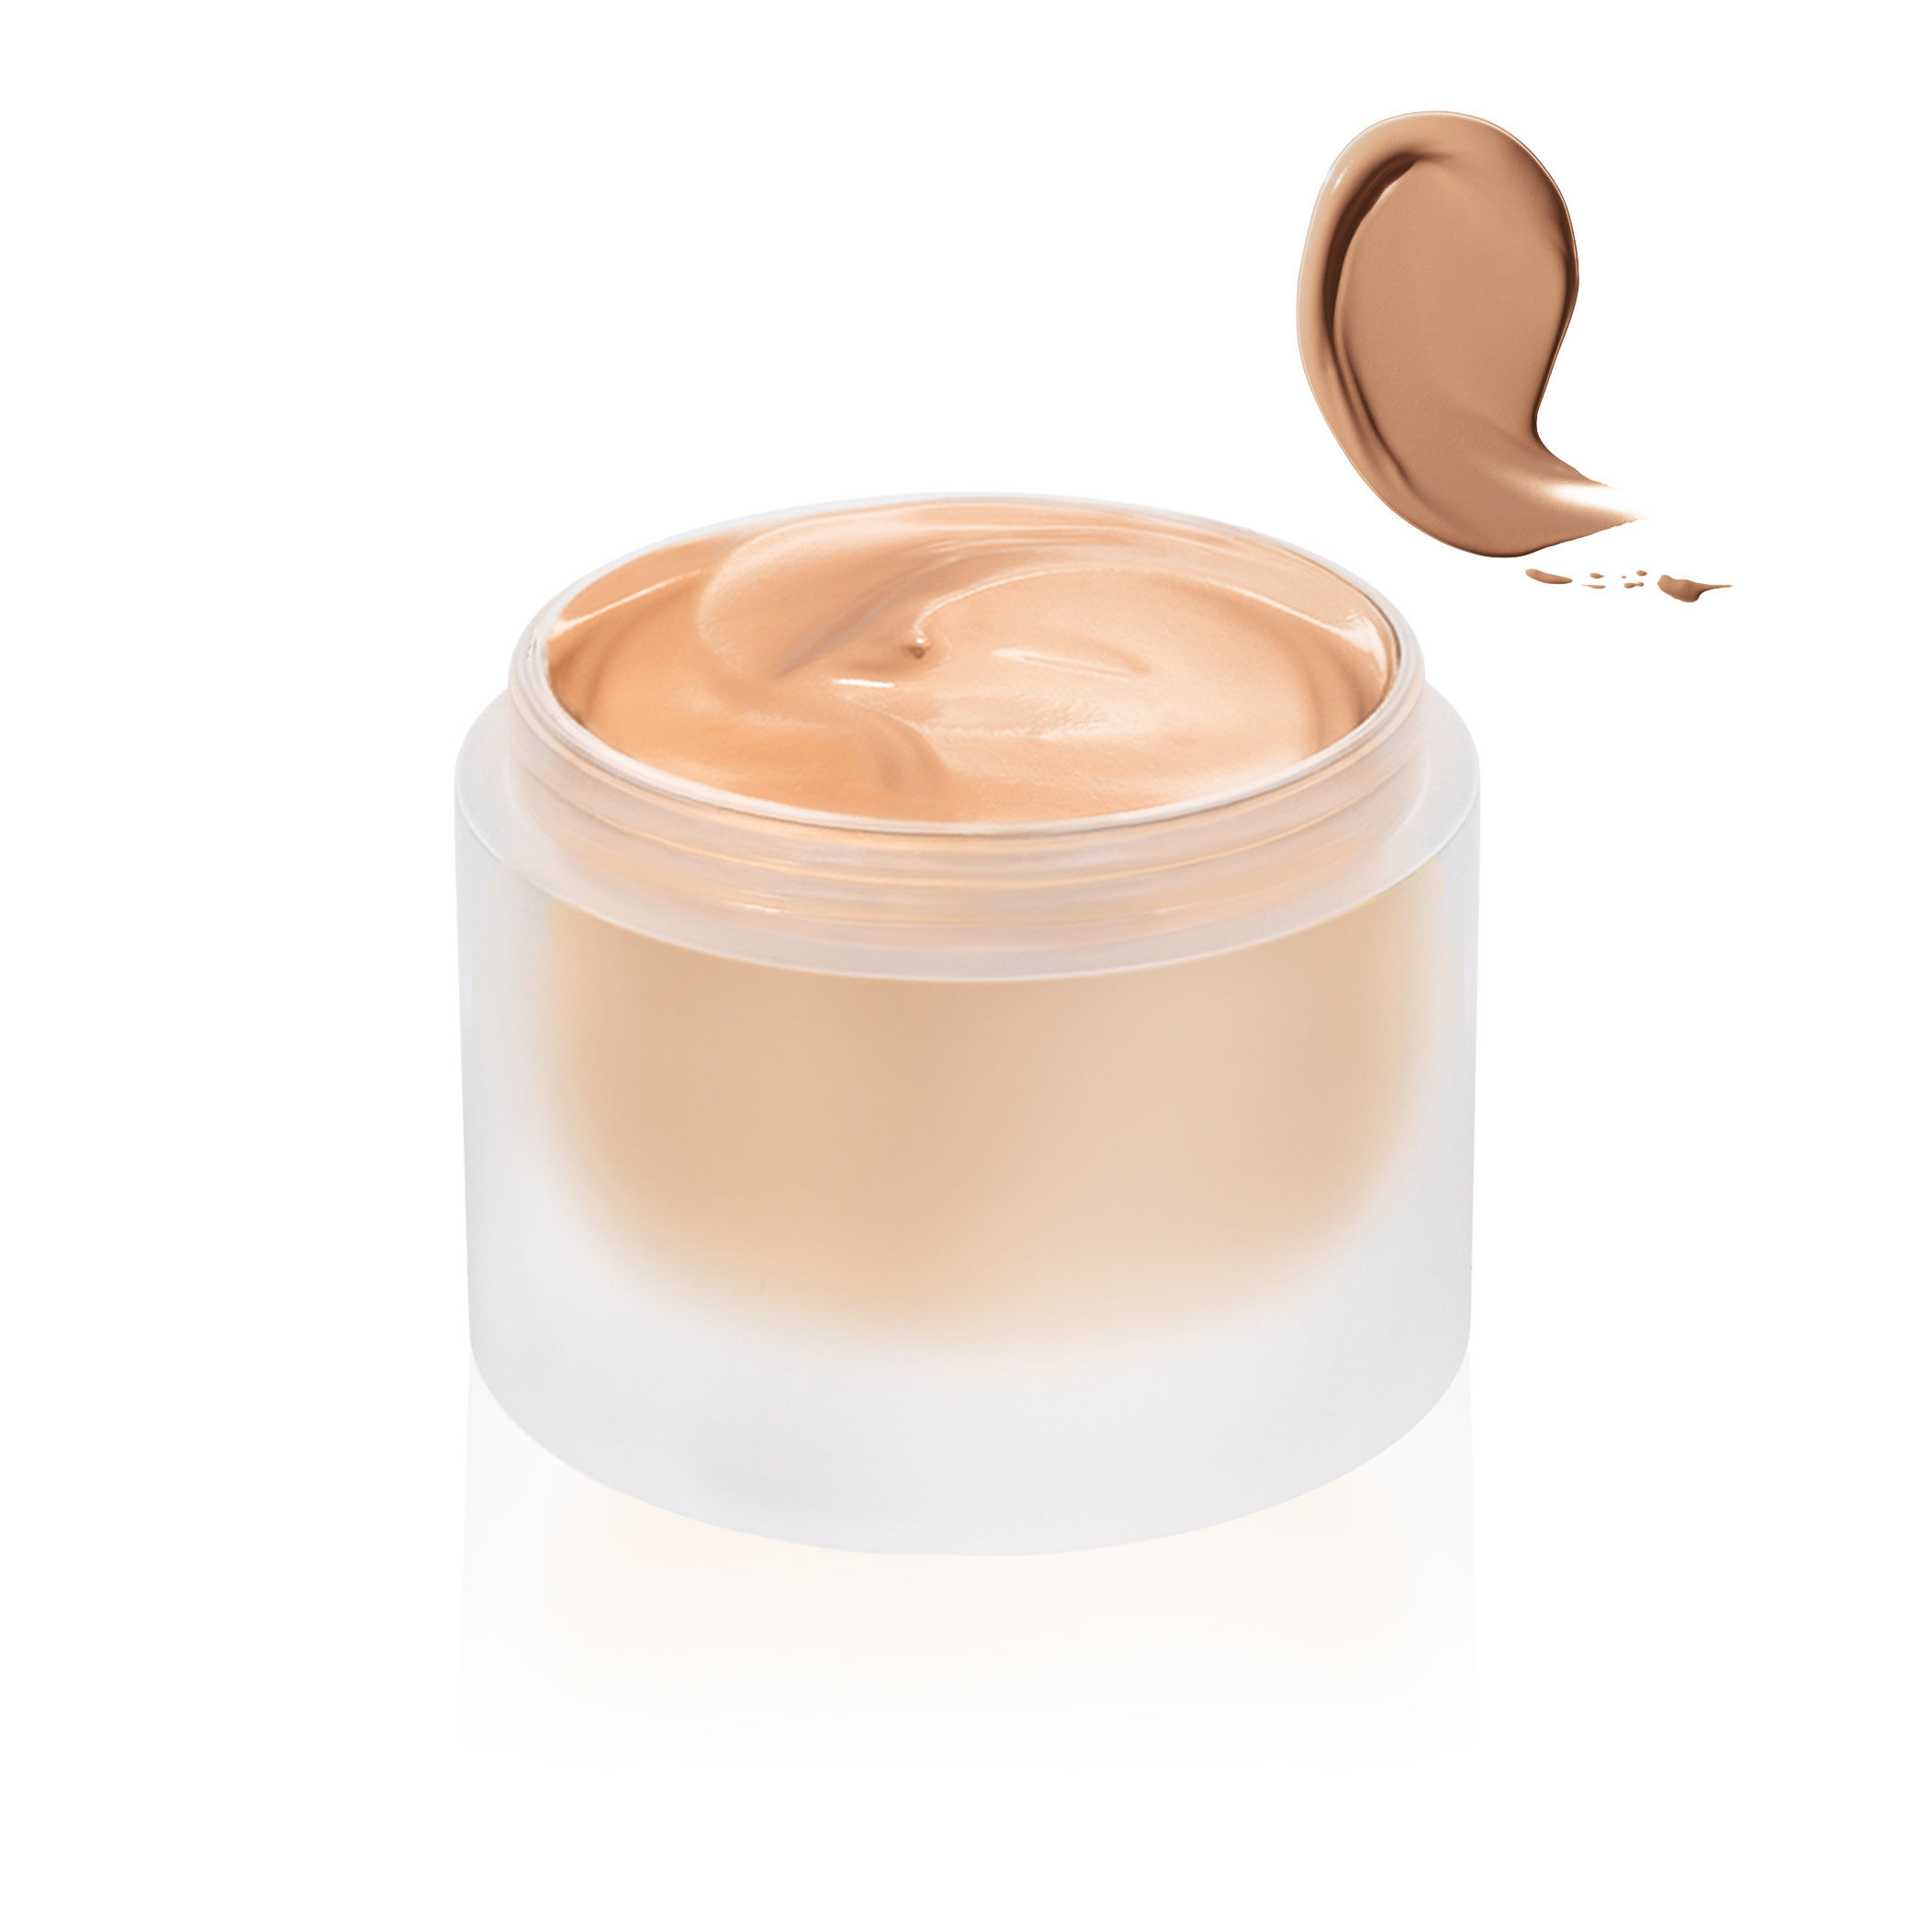 Elizabeth Arden Ceramide Lift & Firm Foundation SPF 15, Bisque